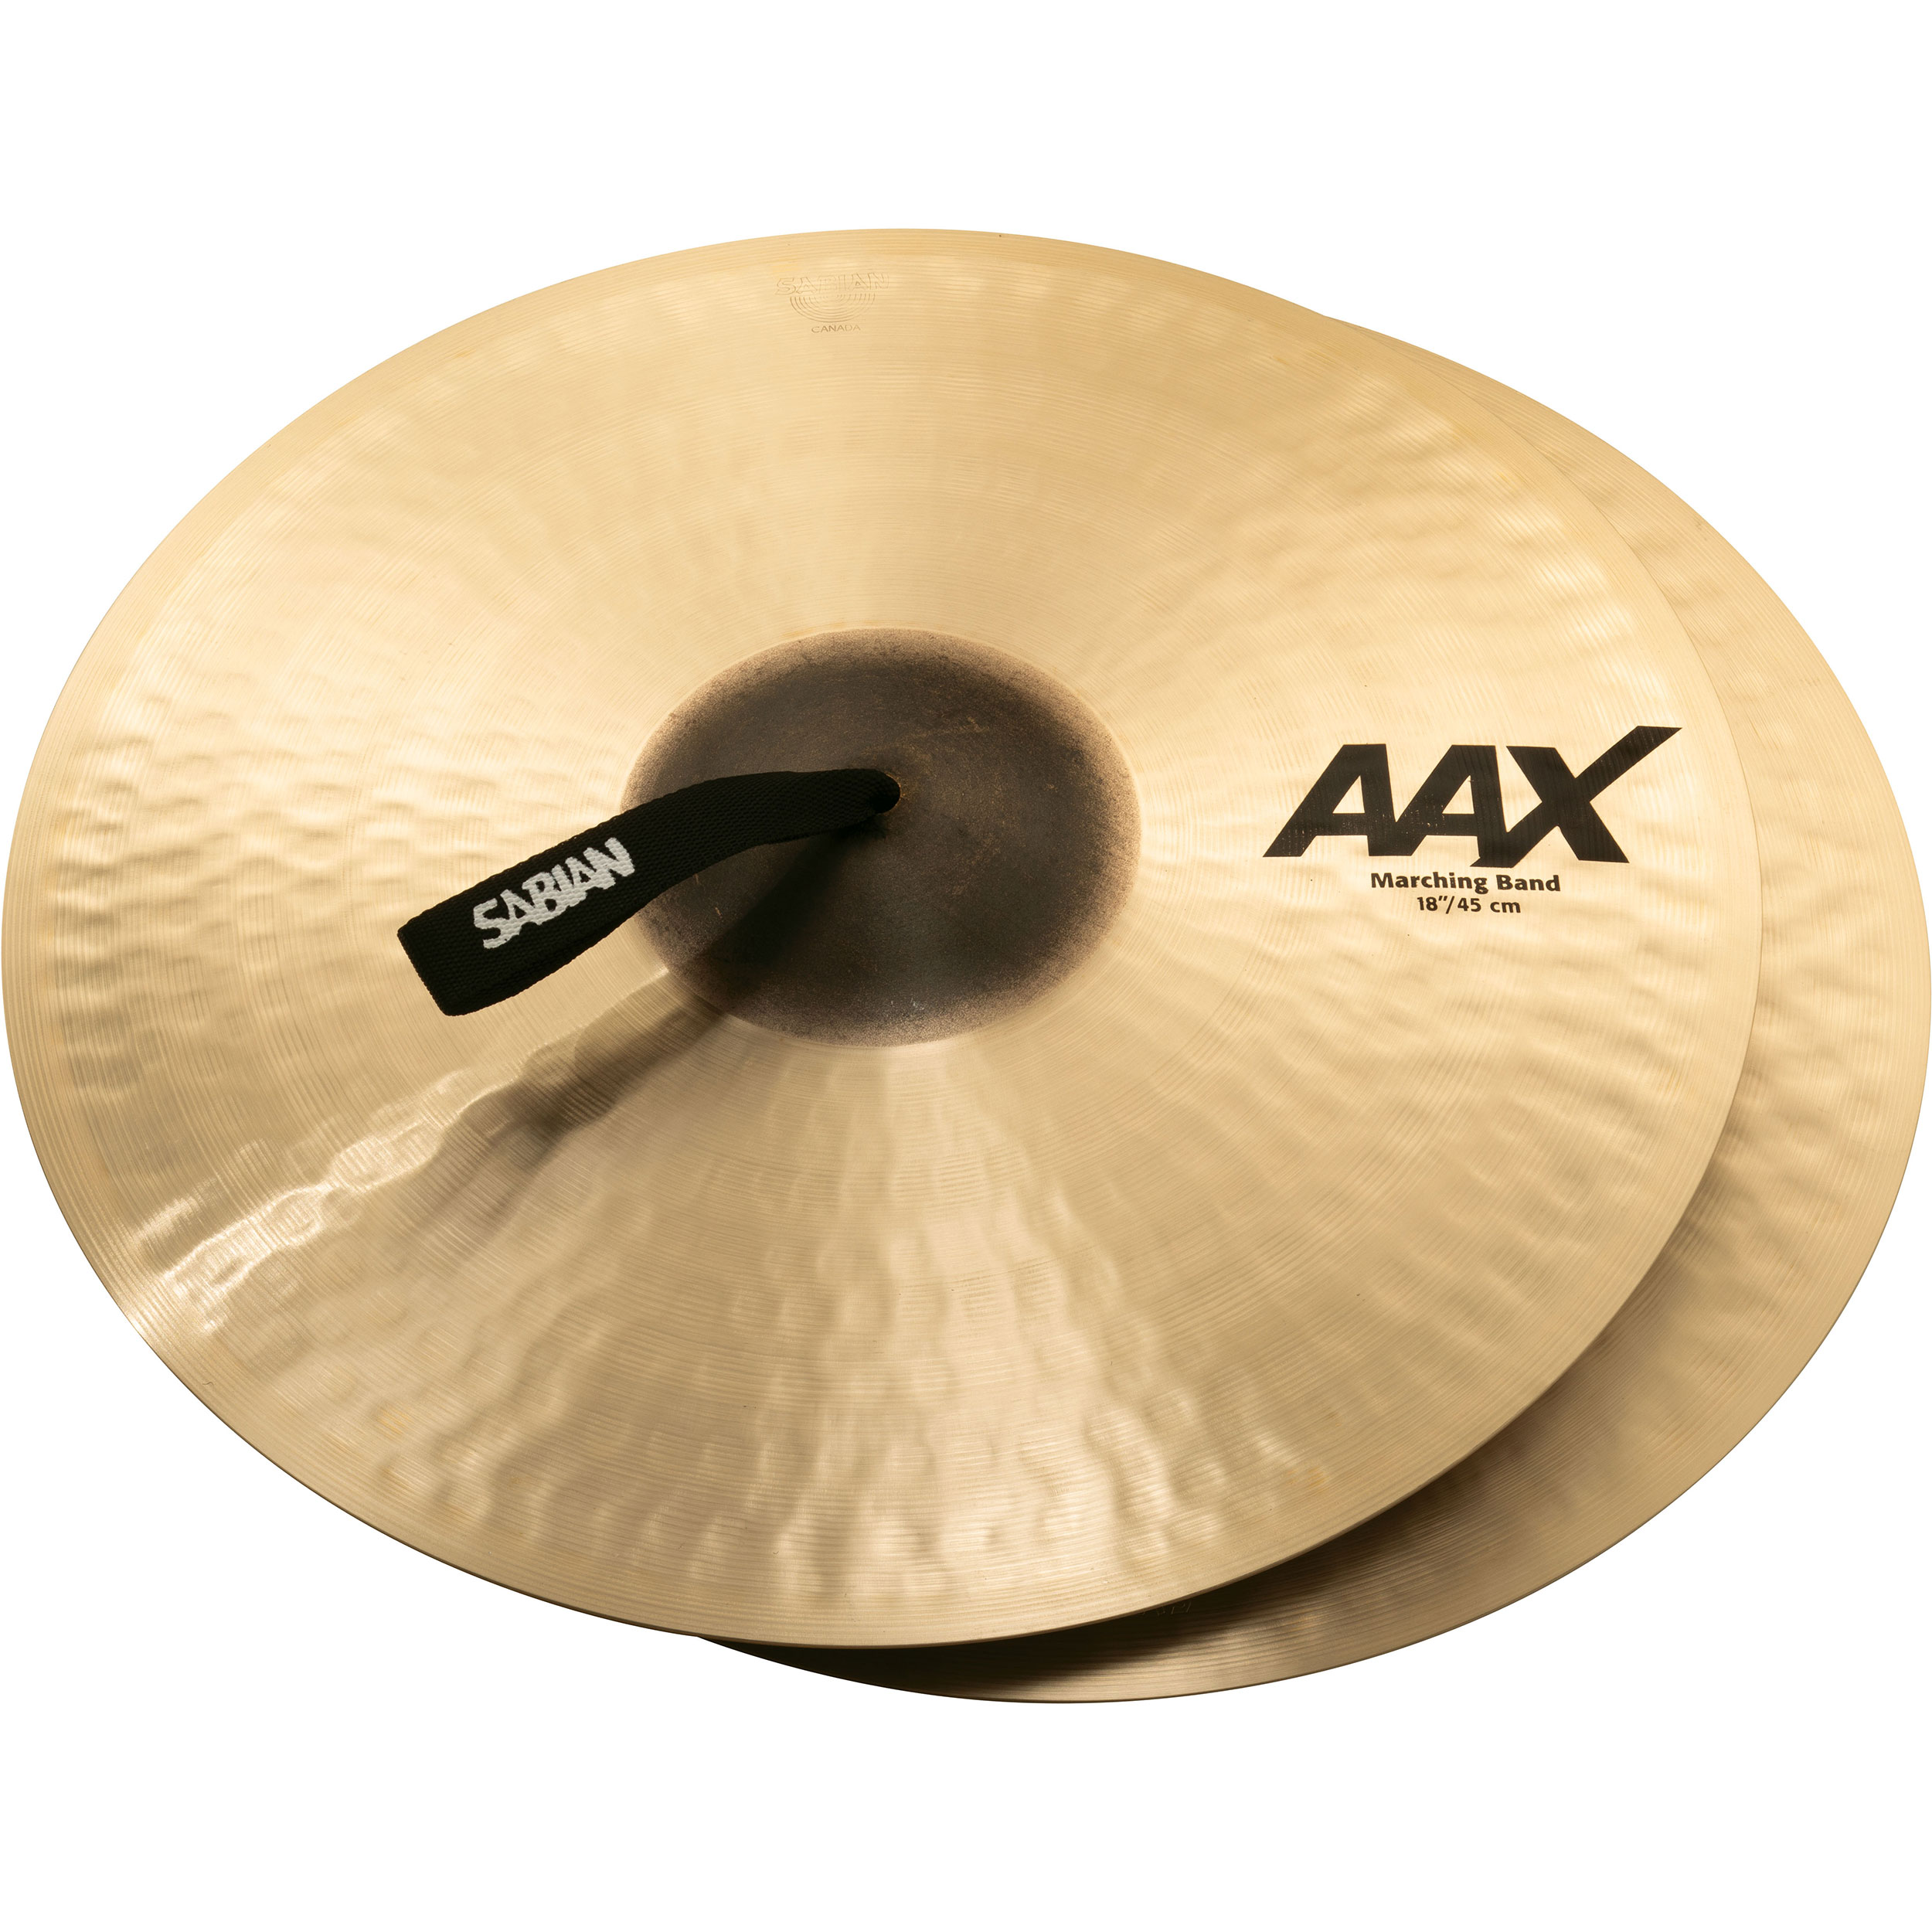 "Sabian 18"" AAX Marching Band Crash Cymbal Pair"